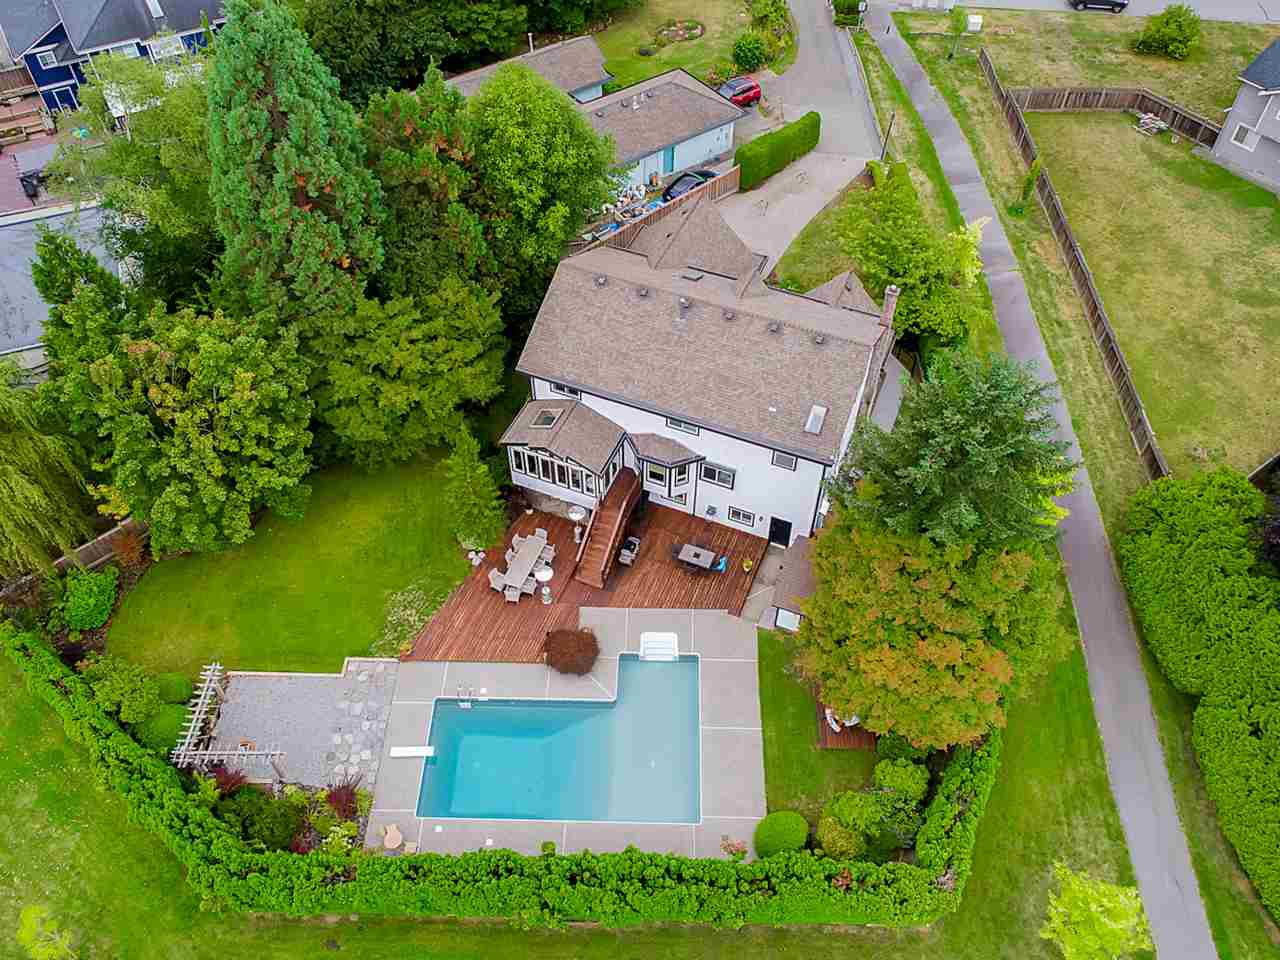 """Main Photo: 7494 150A Street in Surrey: East Newton House for sale in """"CHIMNEY HILL"""" : MLS®# R2403775"""